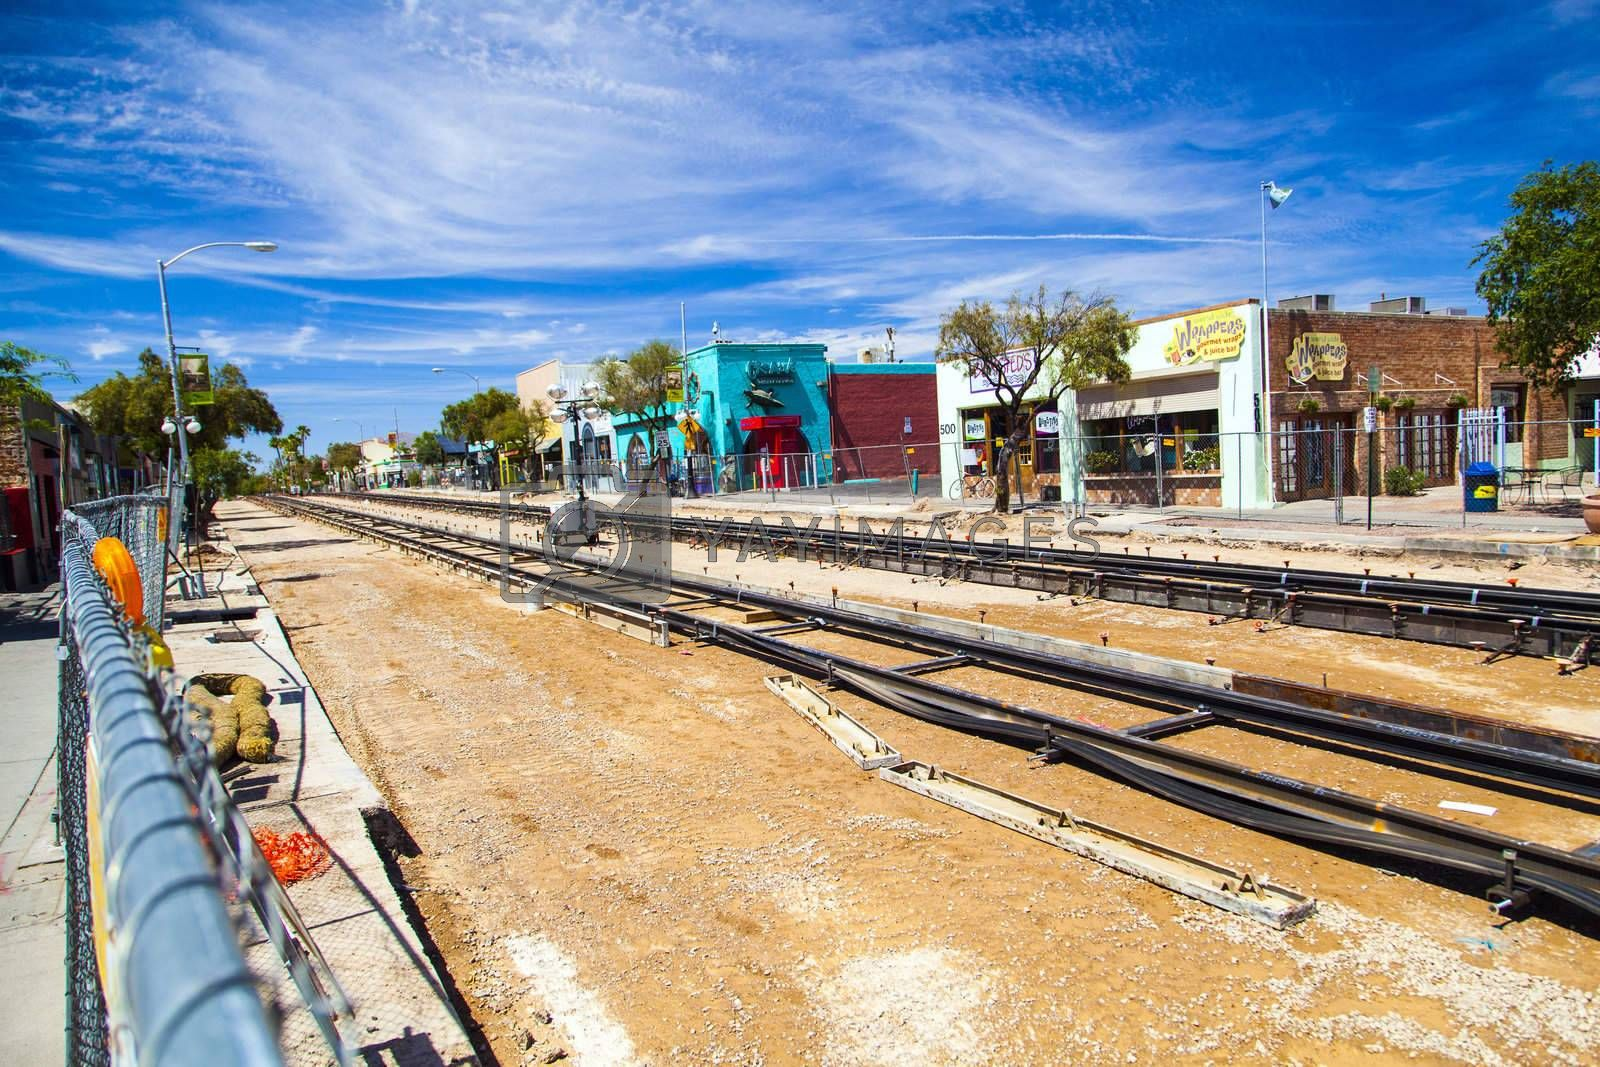 TUCSON, USA - June 12: in the old city on June 16,2012 in TUCSON, USA. Electric streetcars began operating in Tucson on June 1, 1906 and will be completely renovated until 2014.